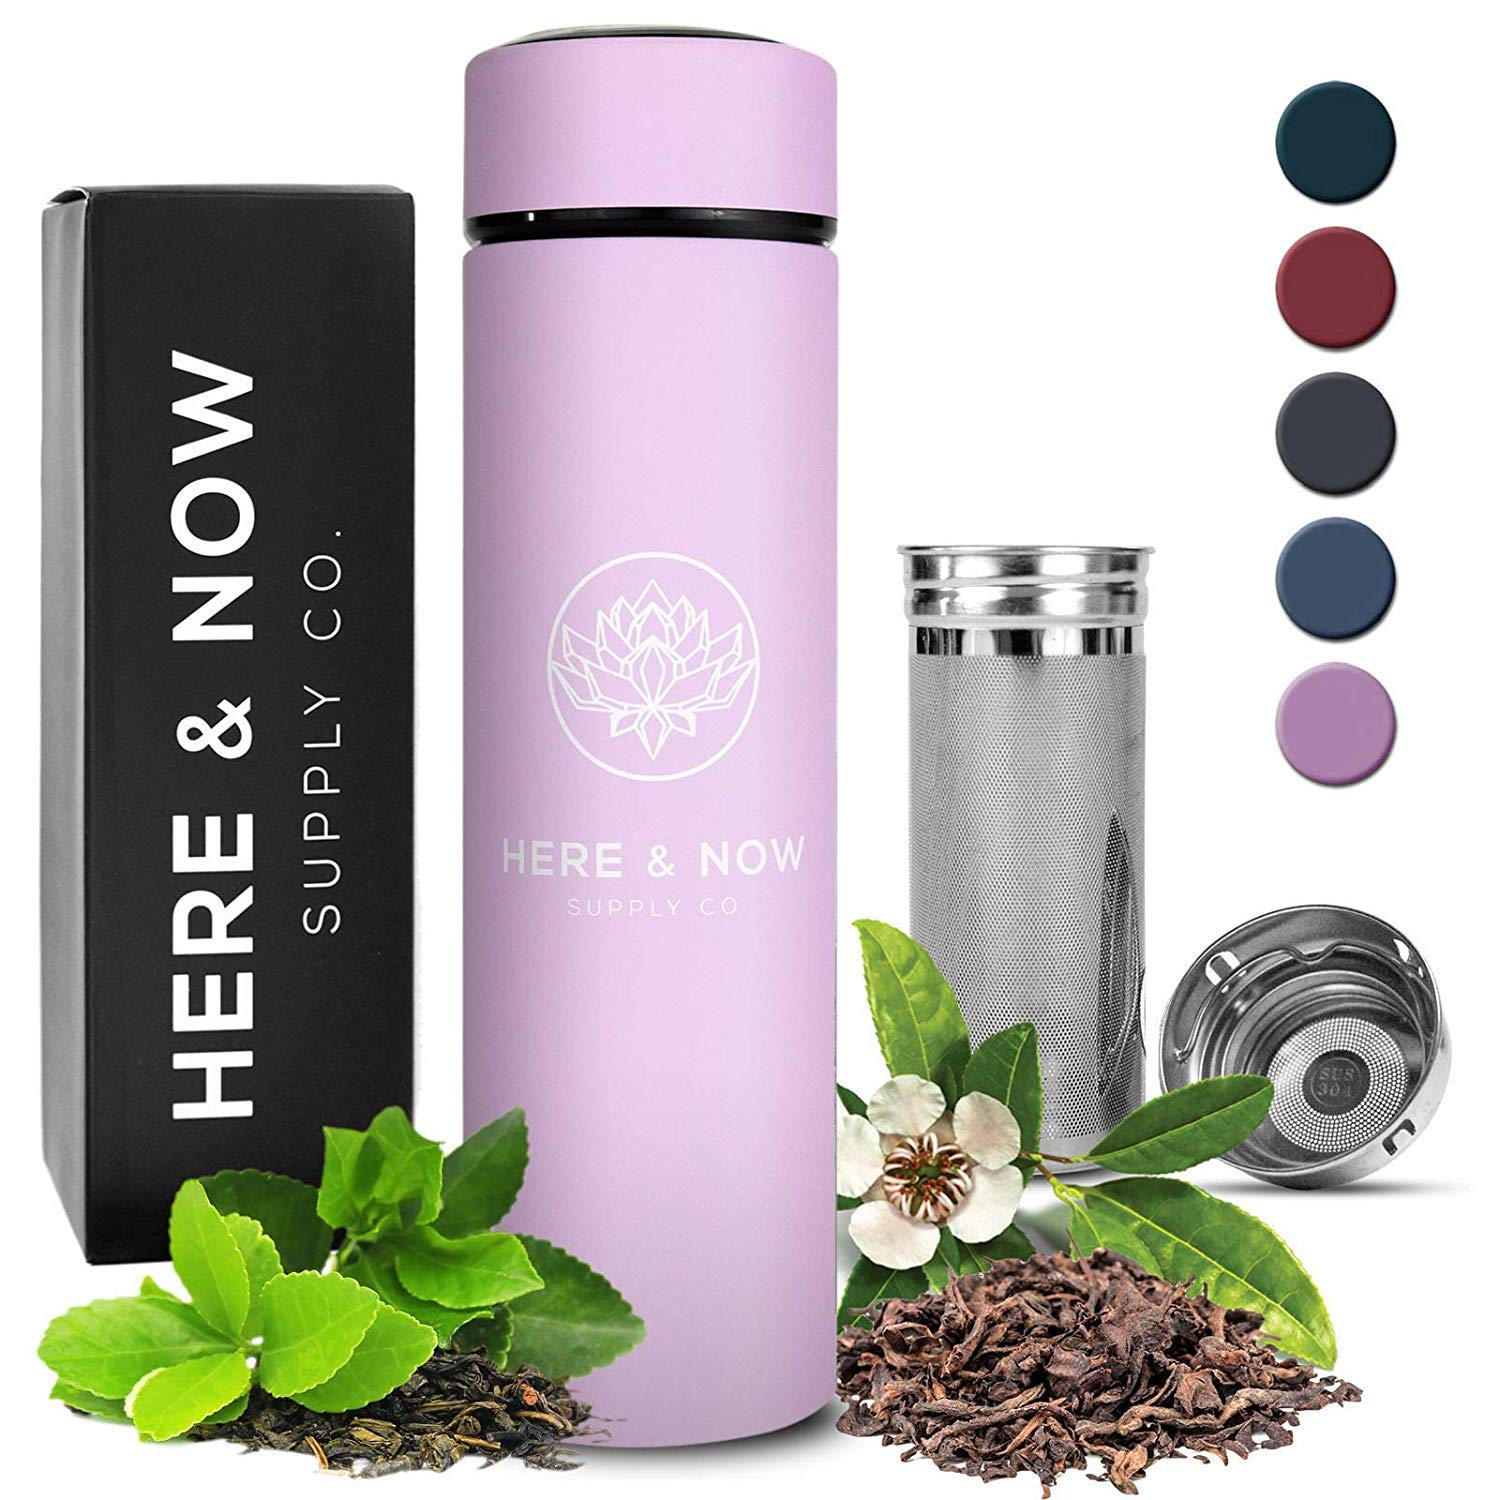 Multi-Purpose Travel Mug and Tumbler | Tea Infuser Water Bottle | Fruit Infused Flask | Hot & Cold Double Wall Stainless Steel Coffee Thermos | EXTRA LONG INFUSER | by Here & Now Supply Co. (Lilac)